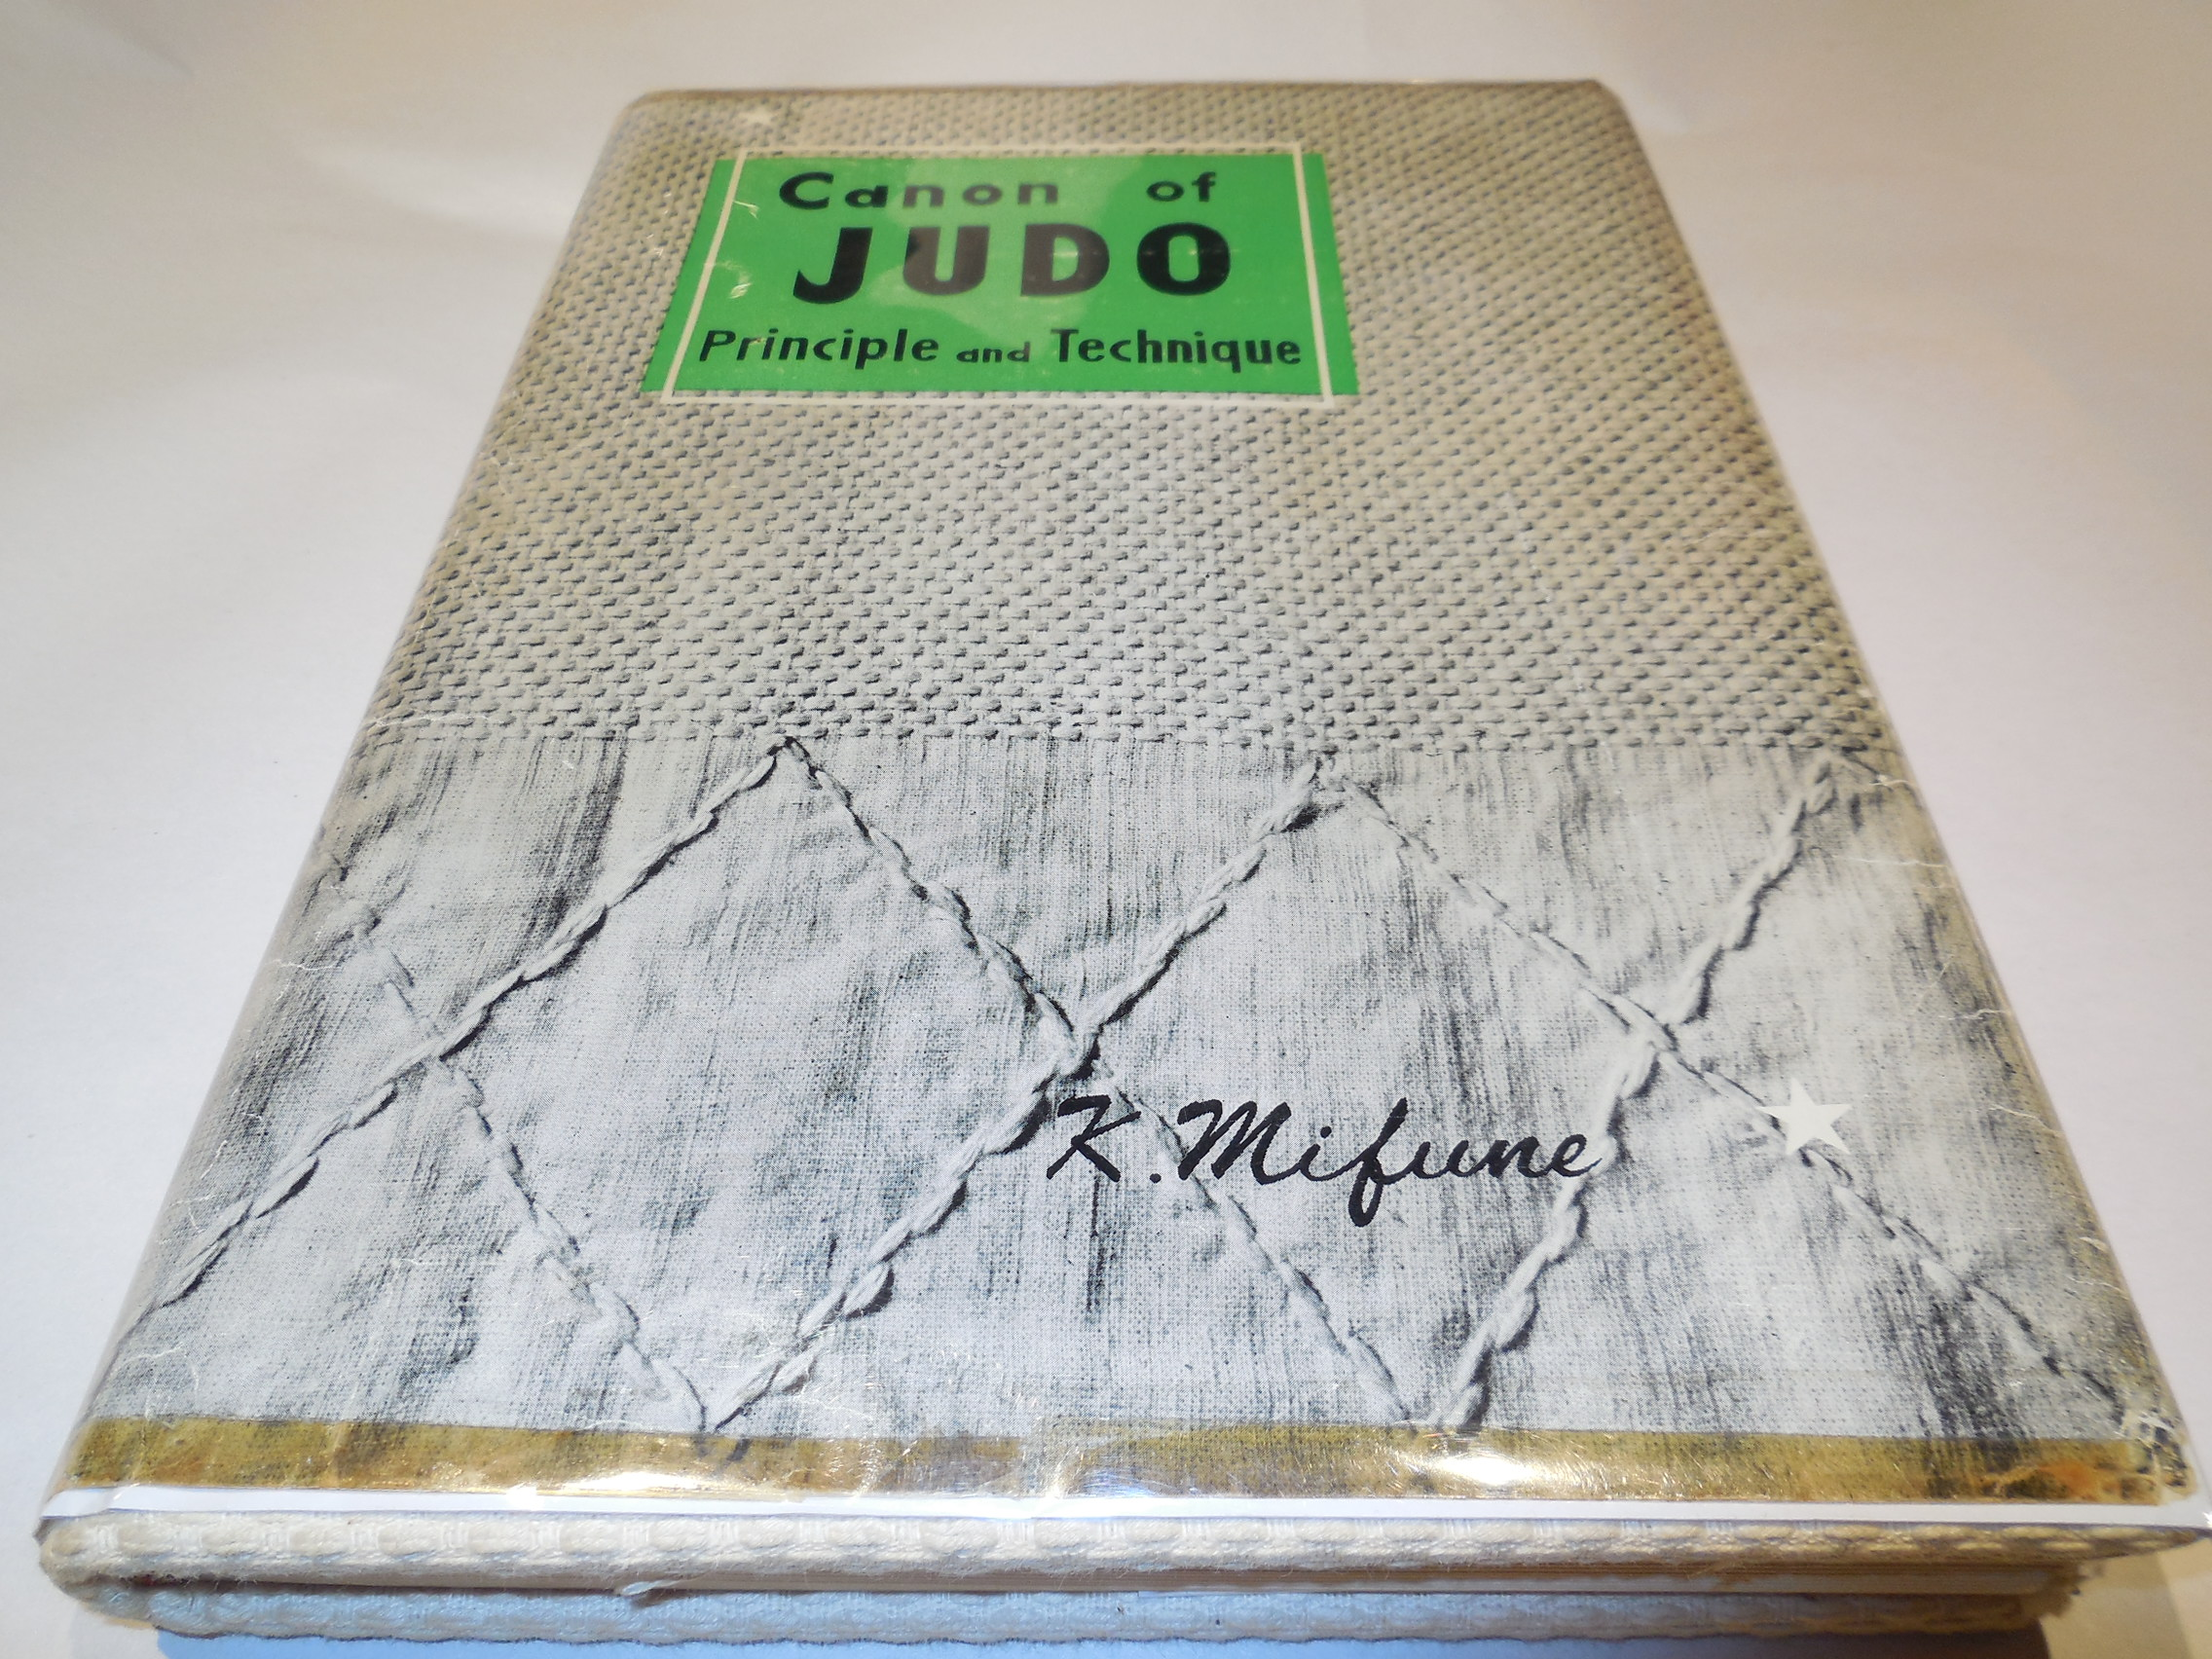 Image for Canon of Judo - Principle and Technique